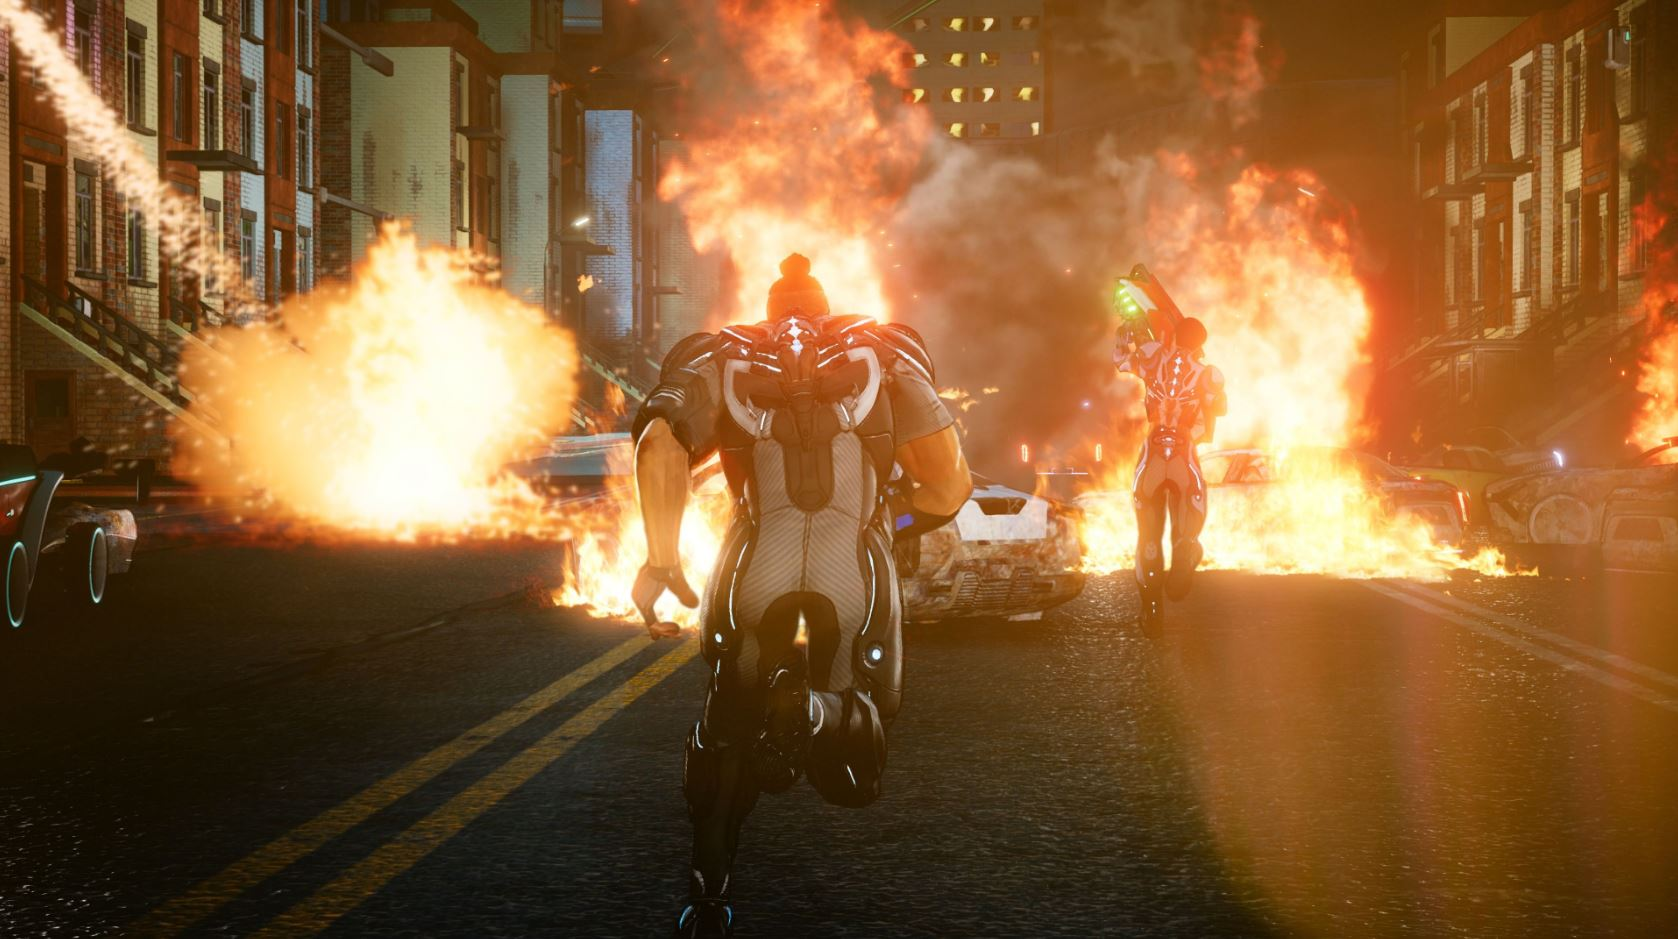 Photo of Crackdown 3 delayed to February 2019, Microsoft confirmed